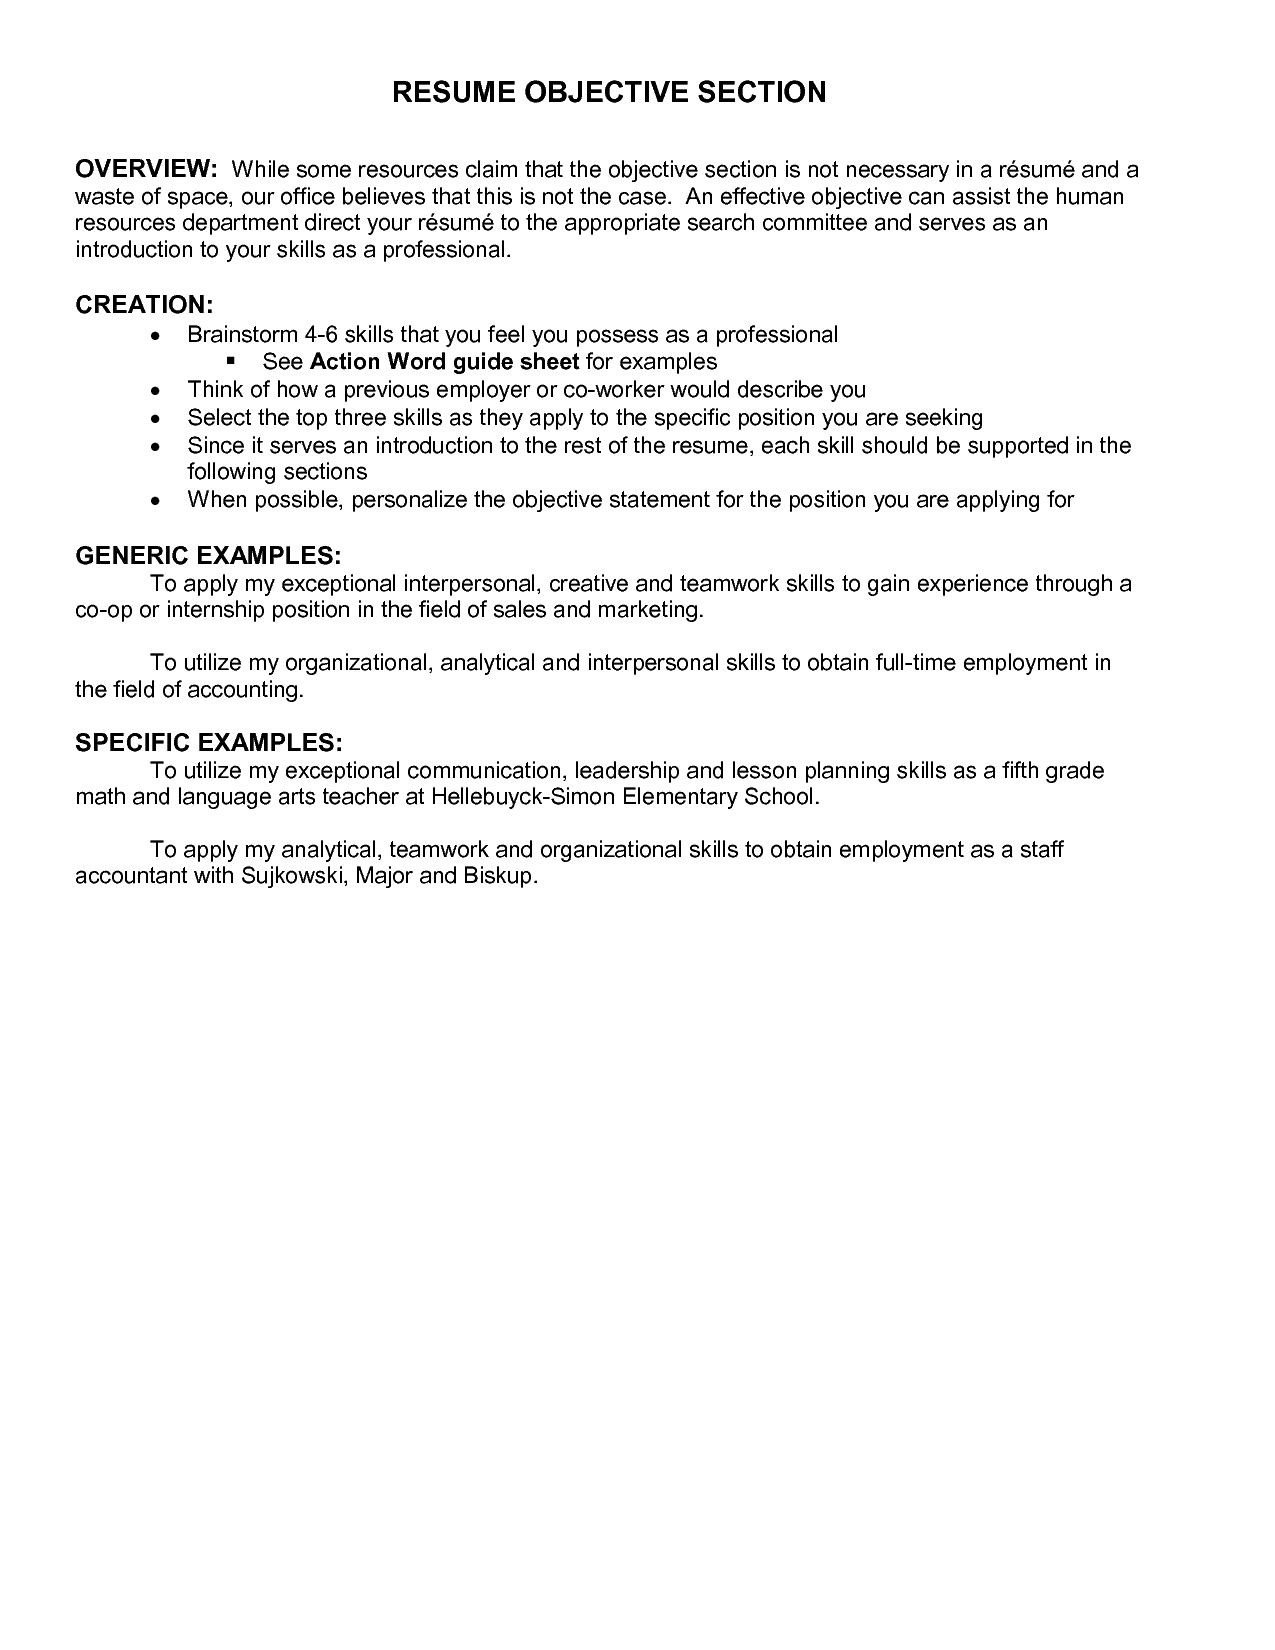 resume objectives best templateresume objective examples application letter sample - Writing A Resume Objective